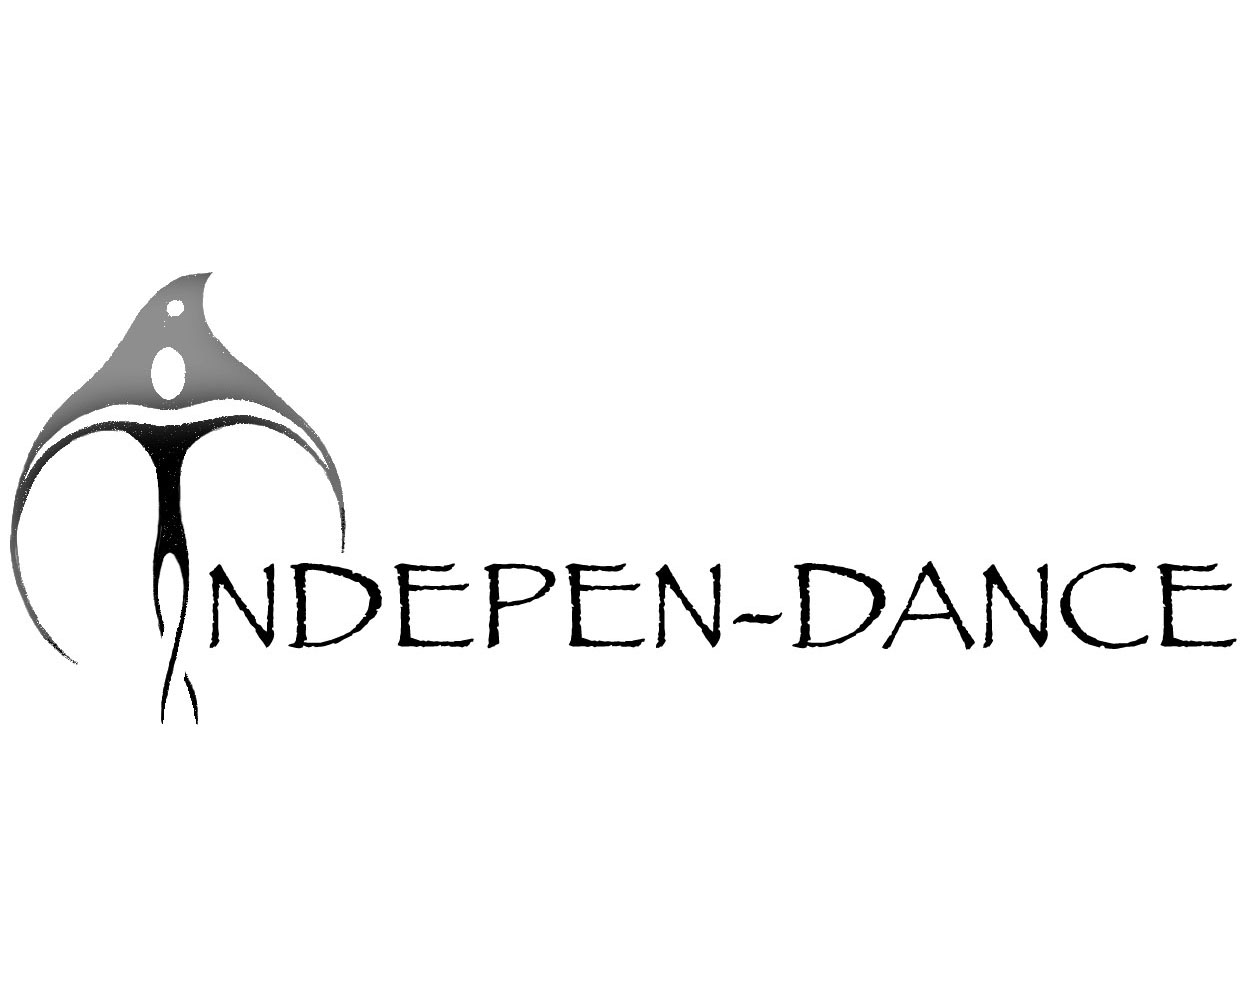 Indepen-dance